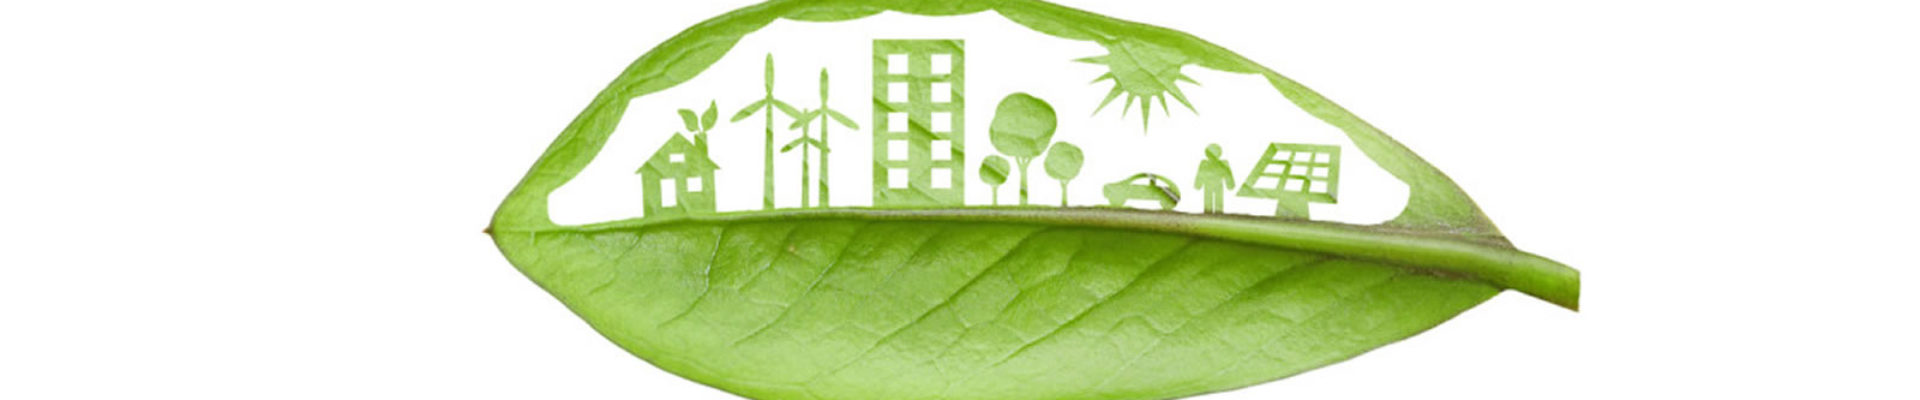 information for Sustainable Development